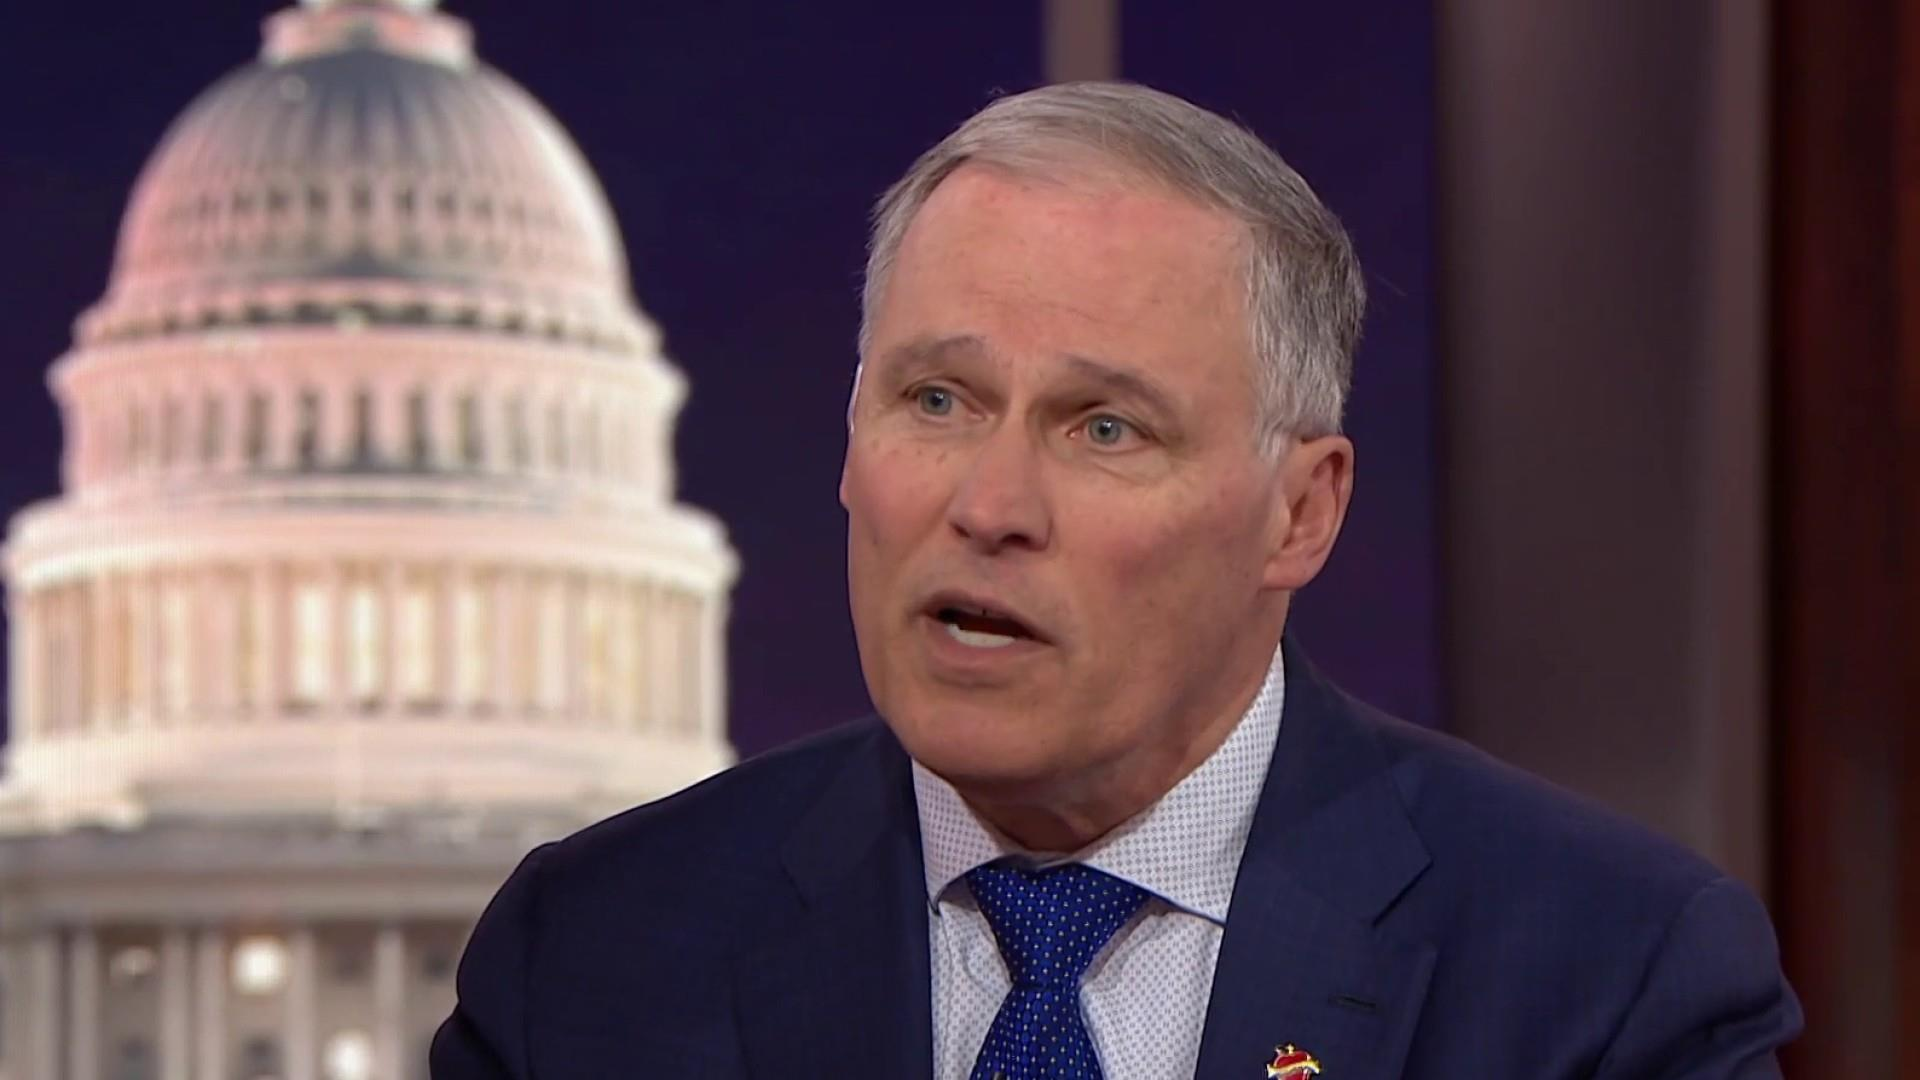 Jay Inslee: Green New Deal has elevated the debate